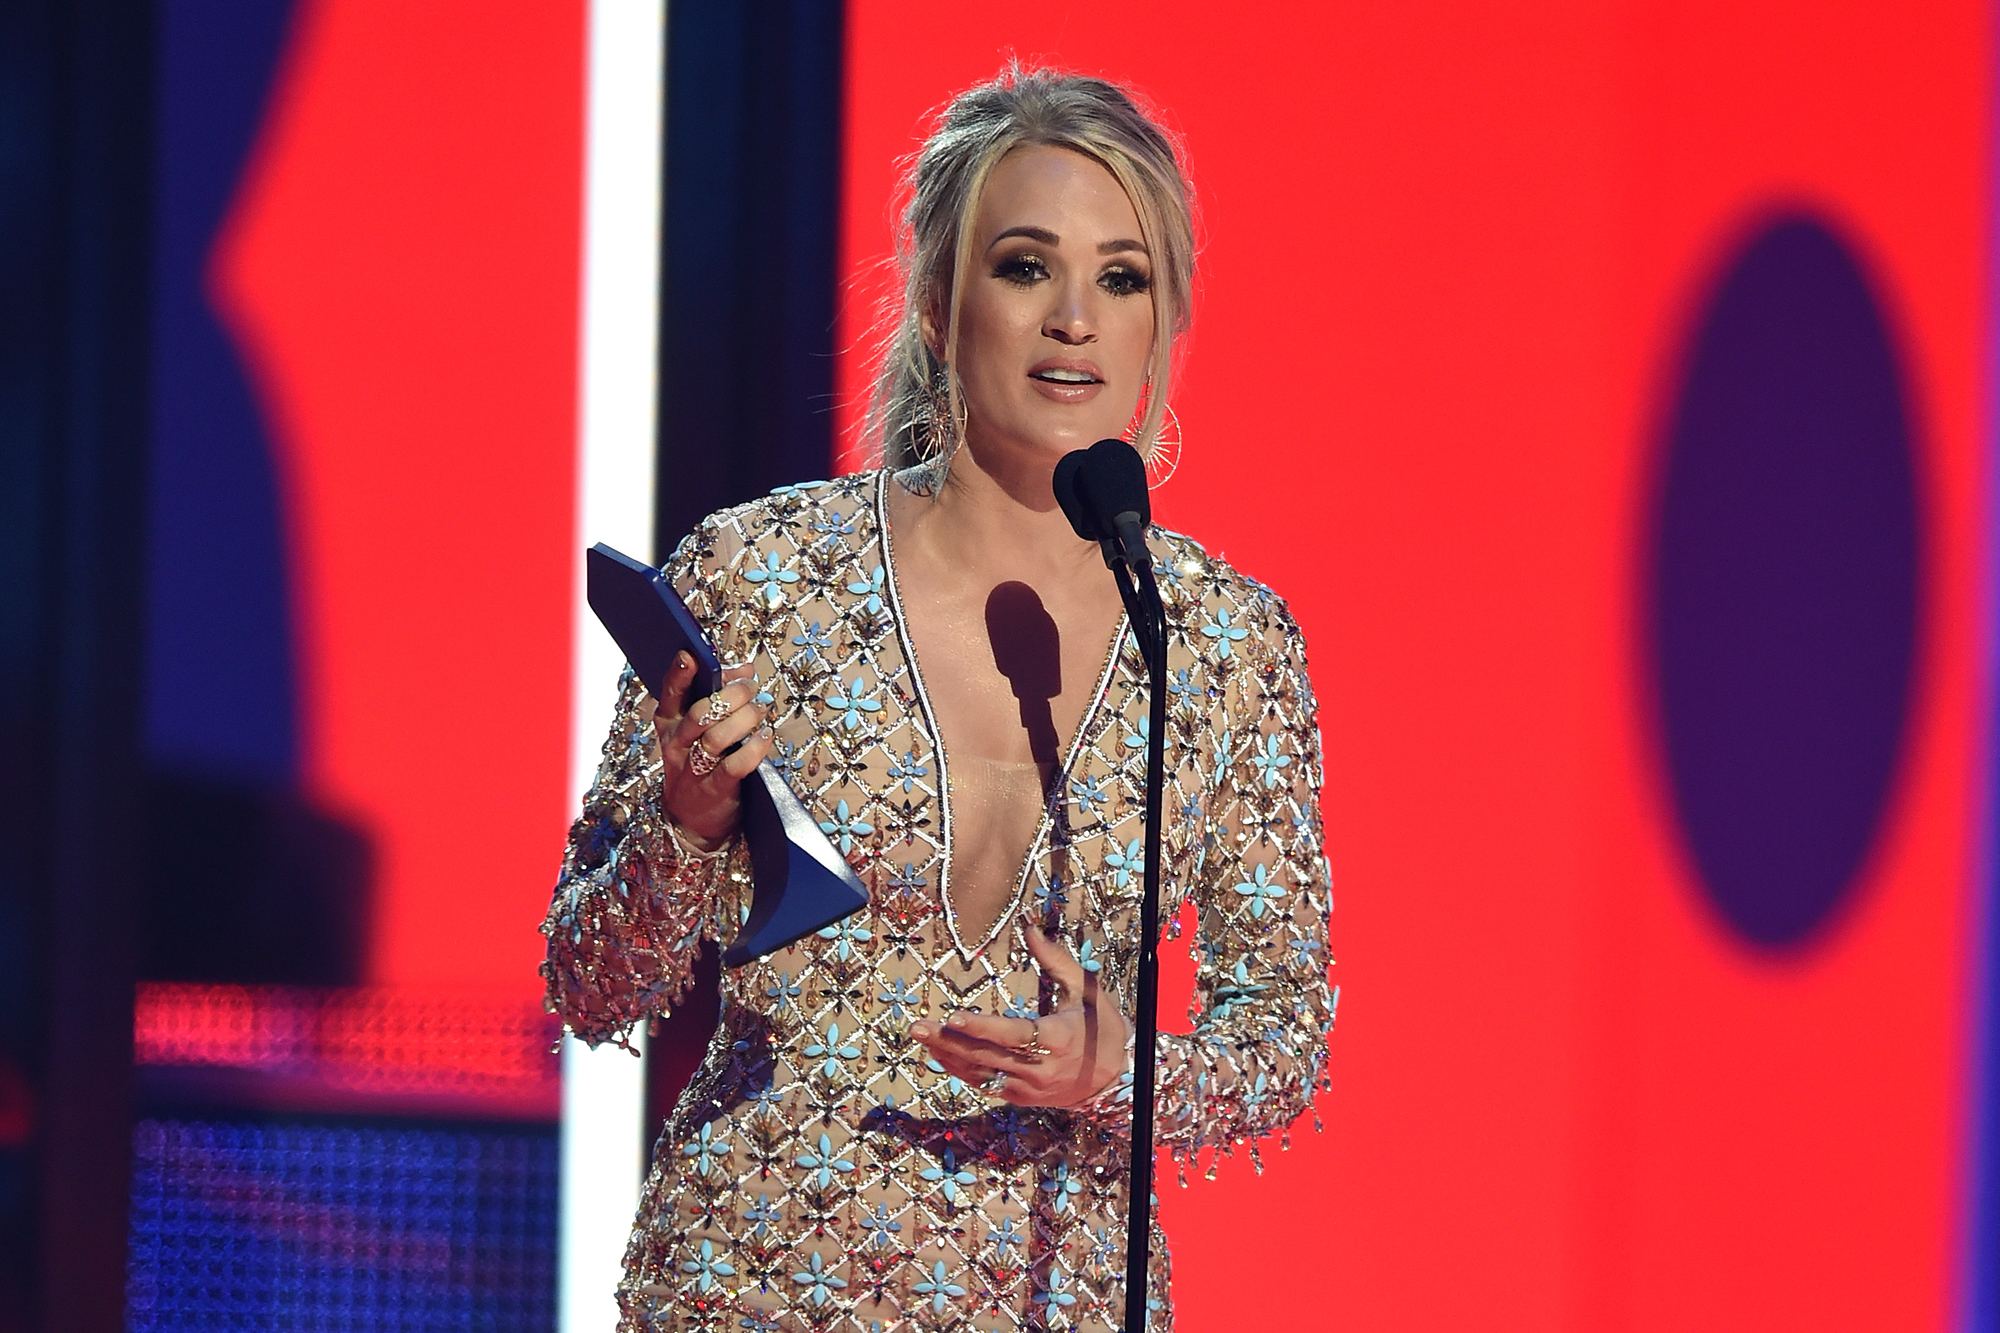 CMT Music Awards 2019: The Complete Winners List